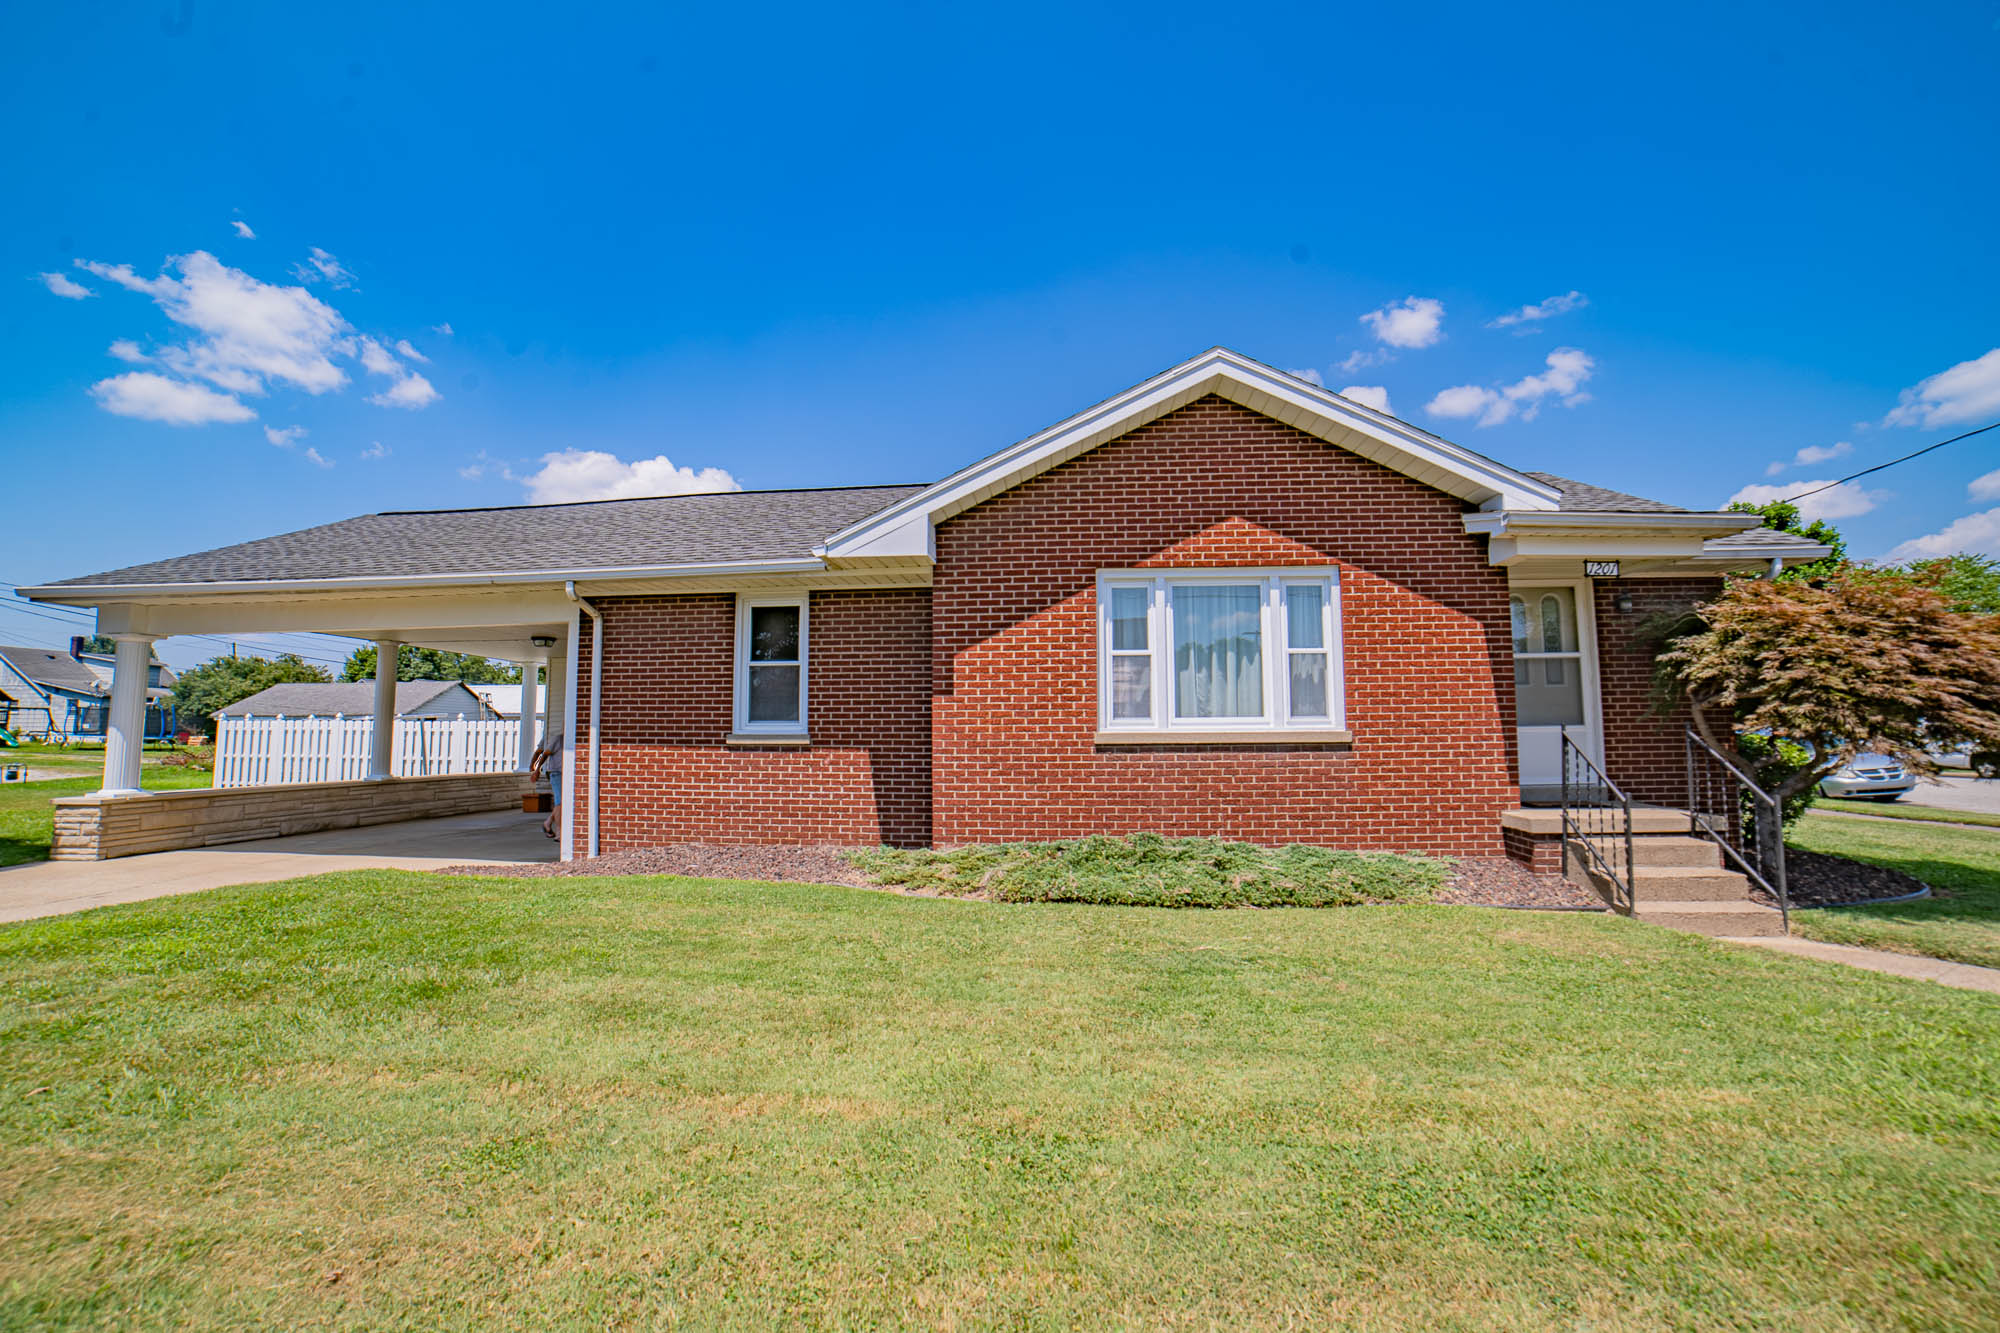 Immaculately Clean and Well Maintained Brick Home